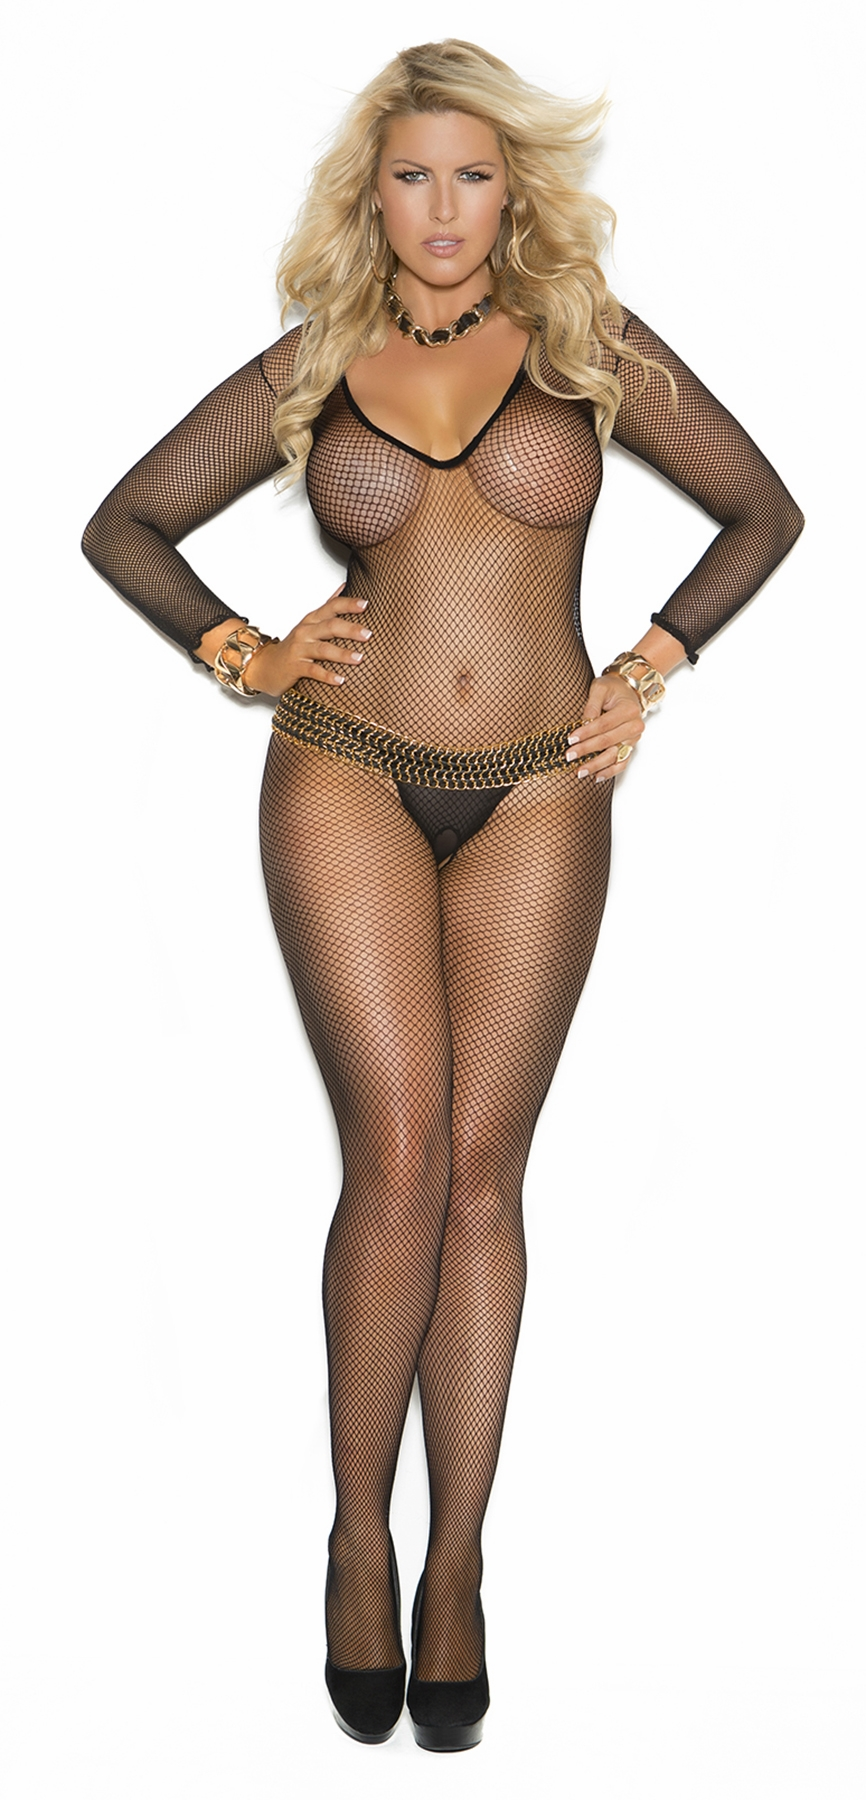 1613q Plus Size Queen Deep V Cut Fishnet Bodystocking by Elegant Moments